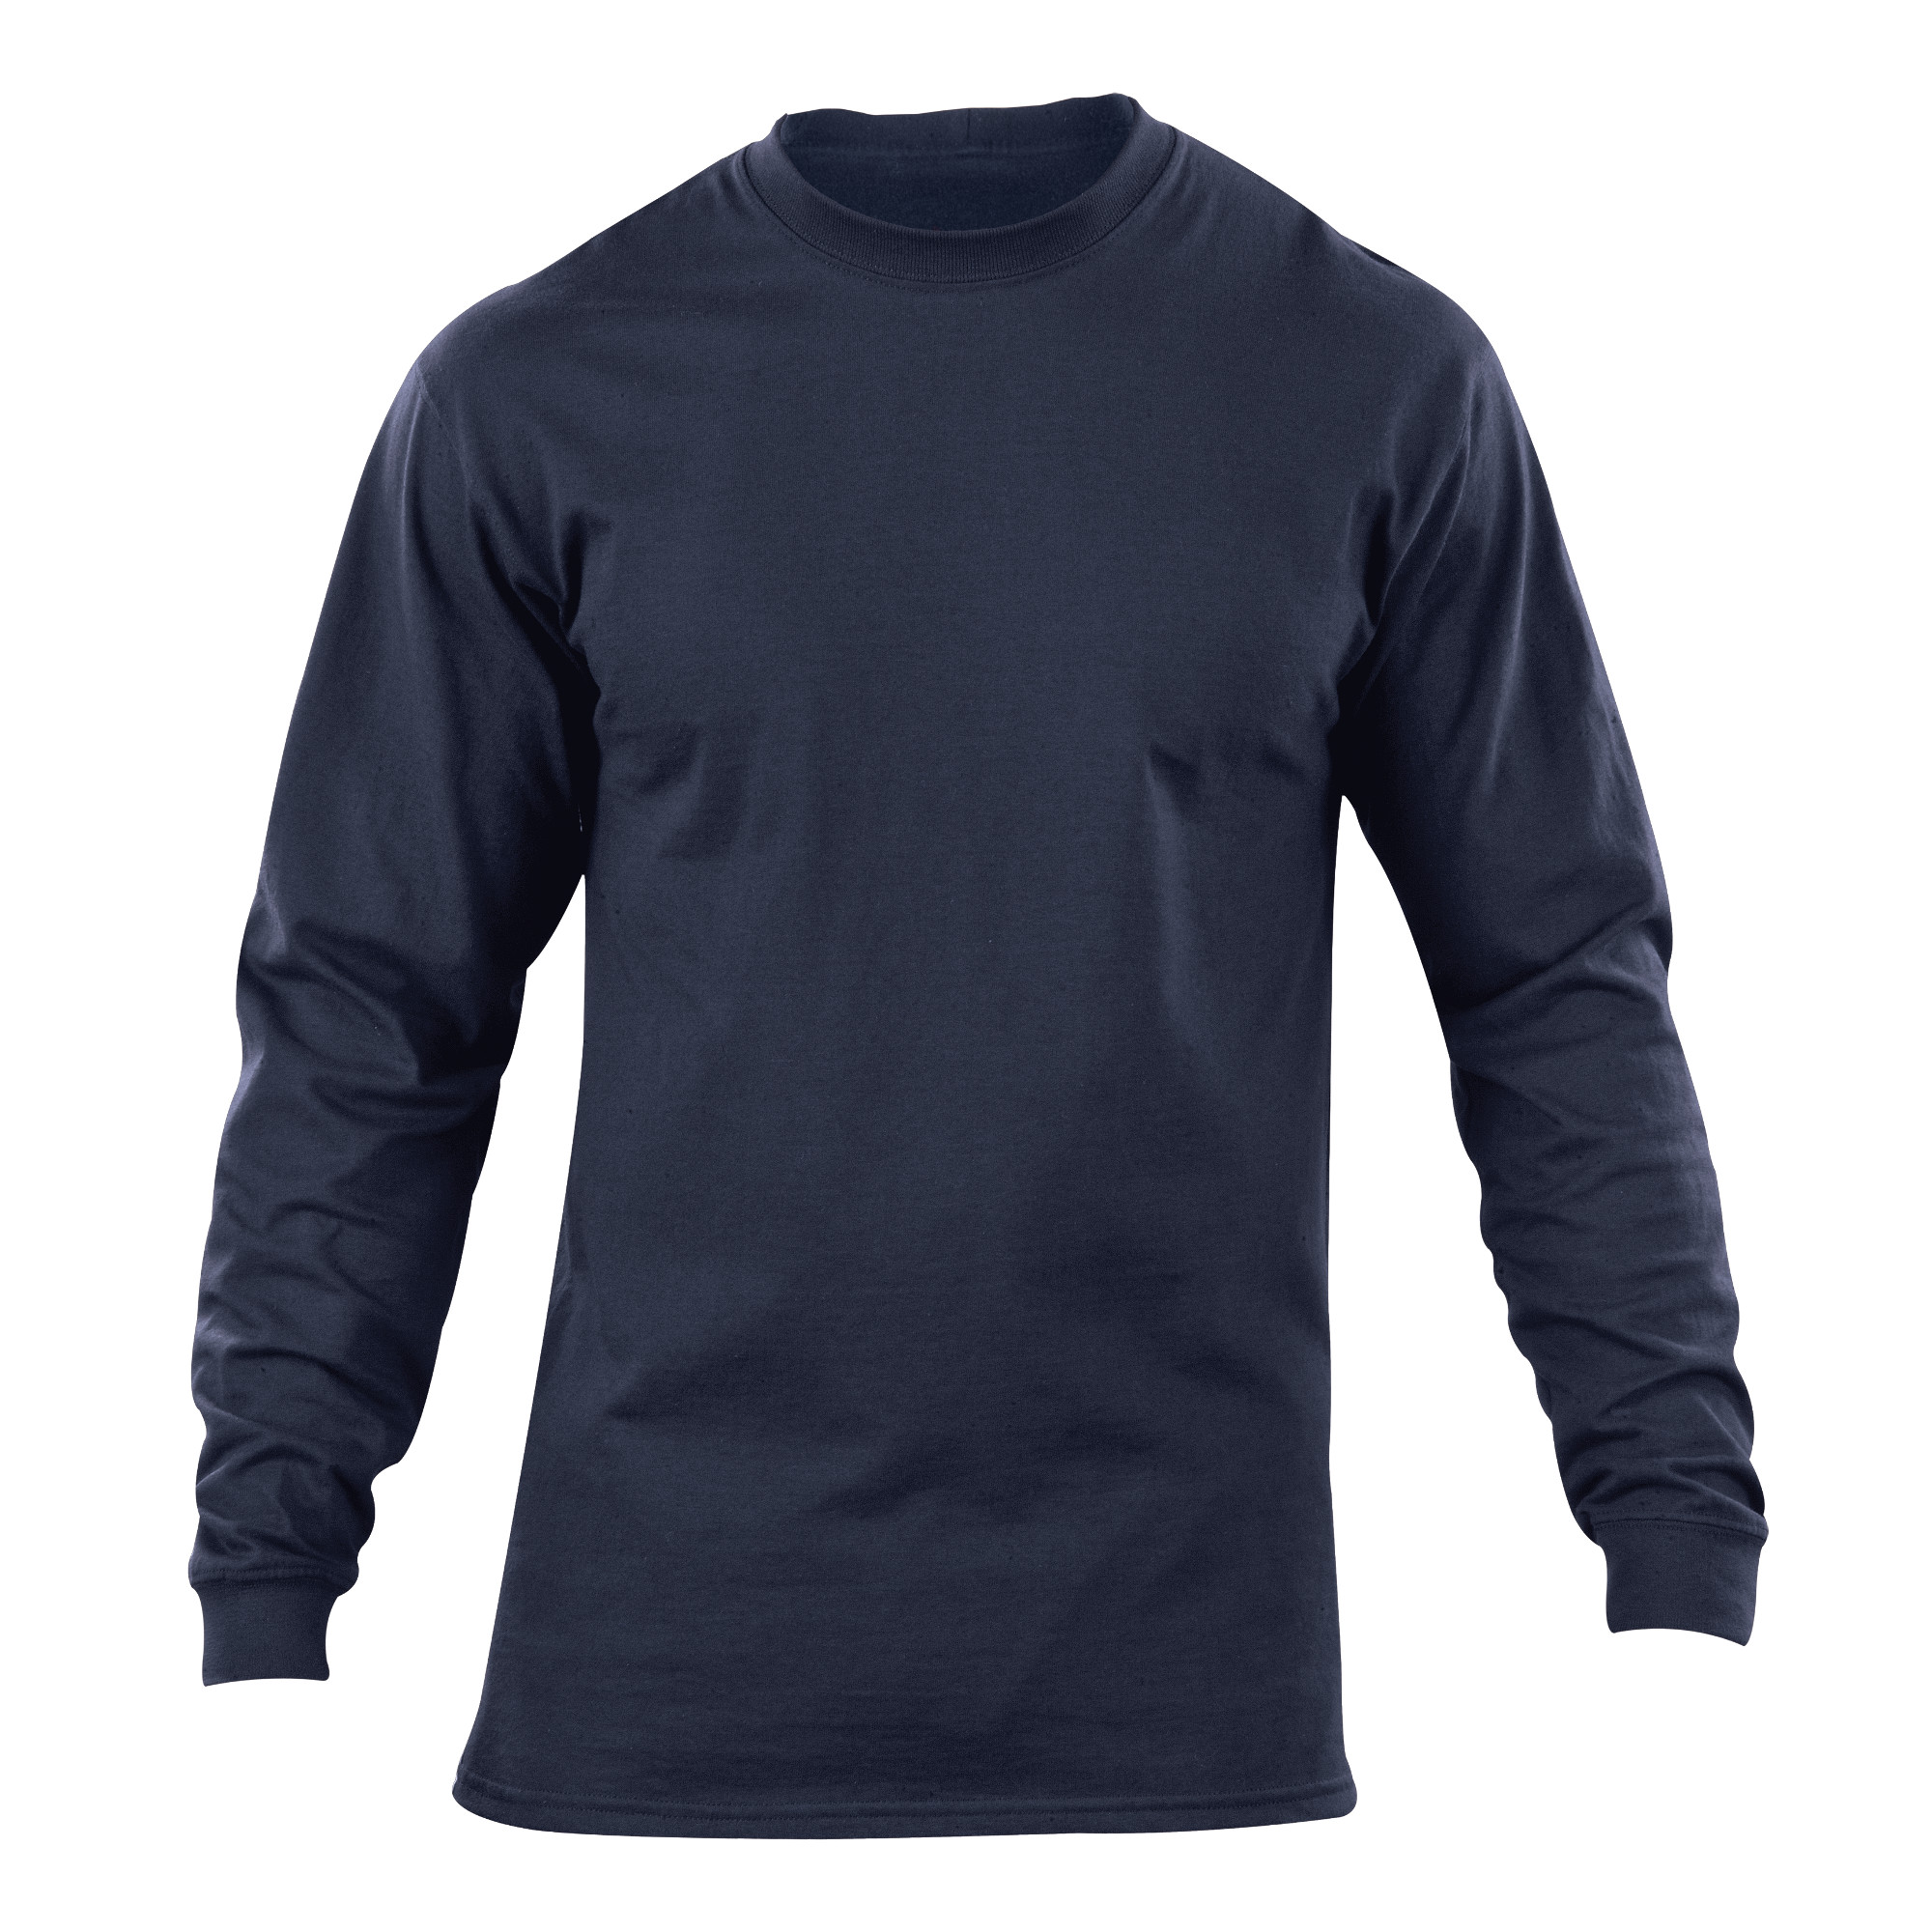 5.11 Mens Long Sleeve Station Wear Tee 40052